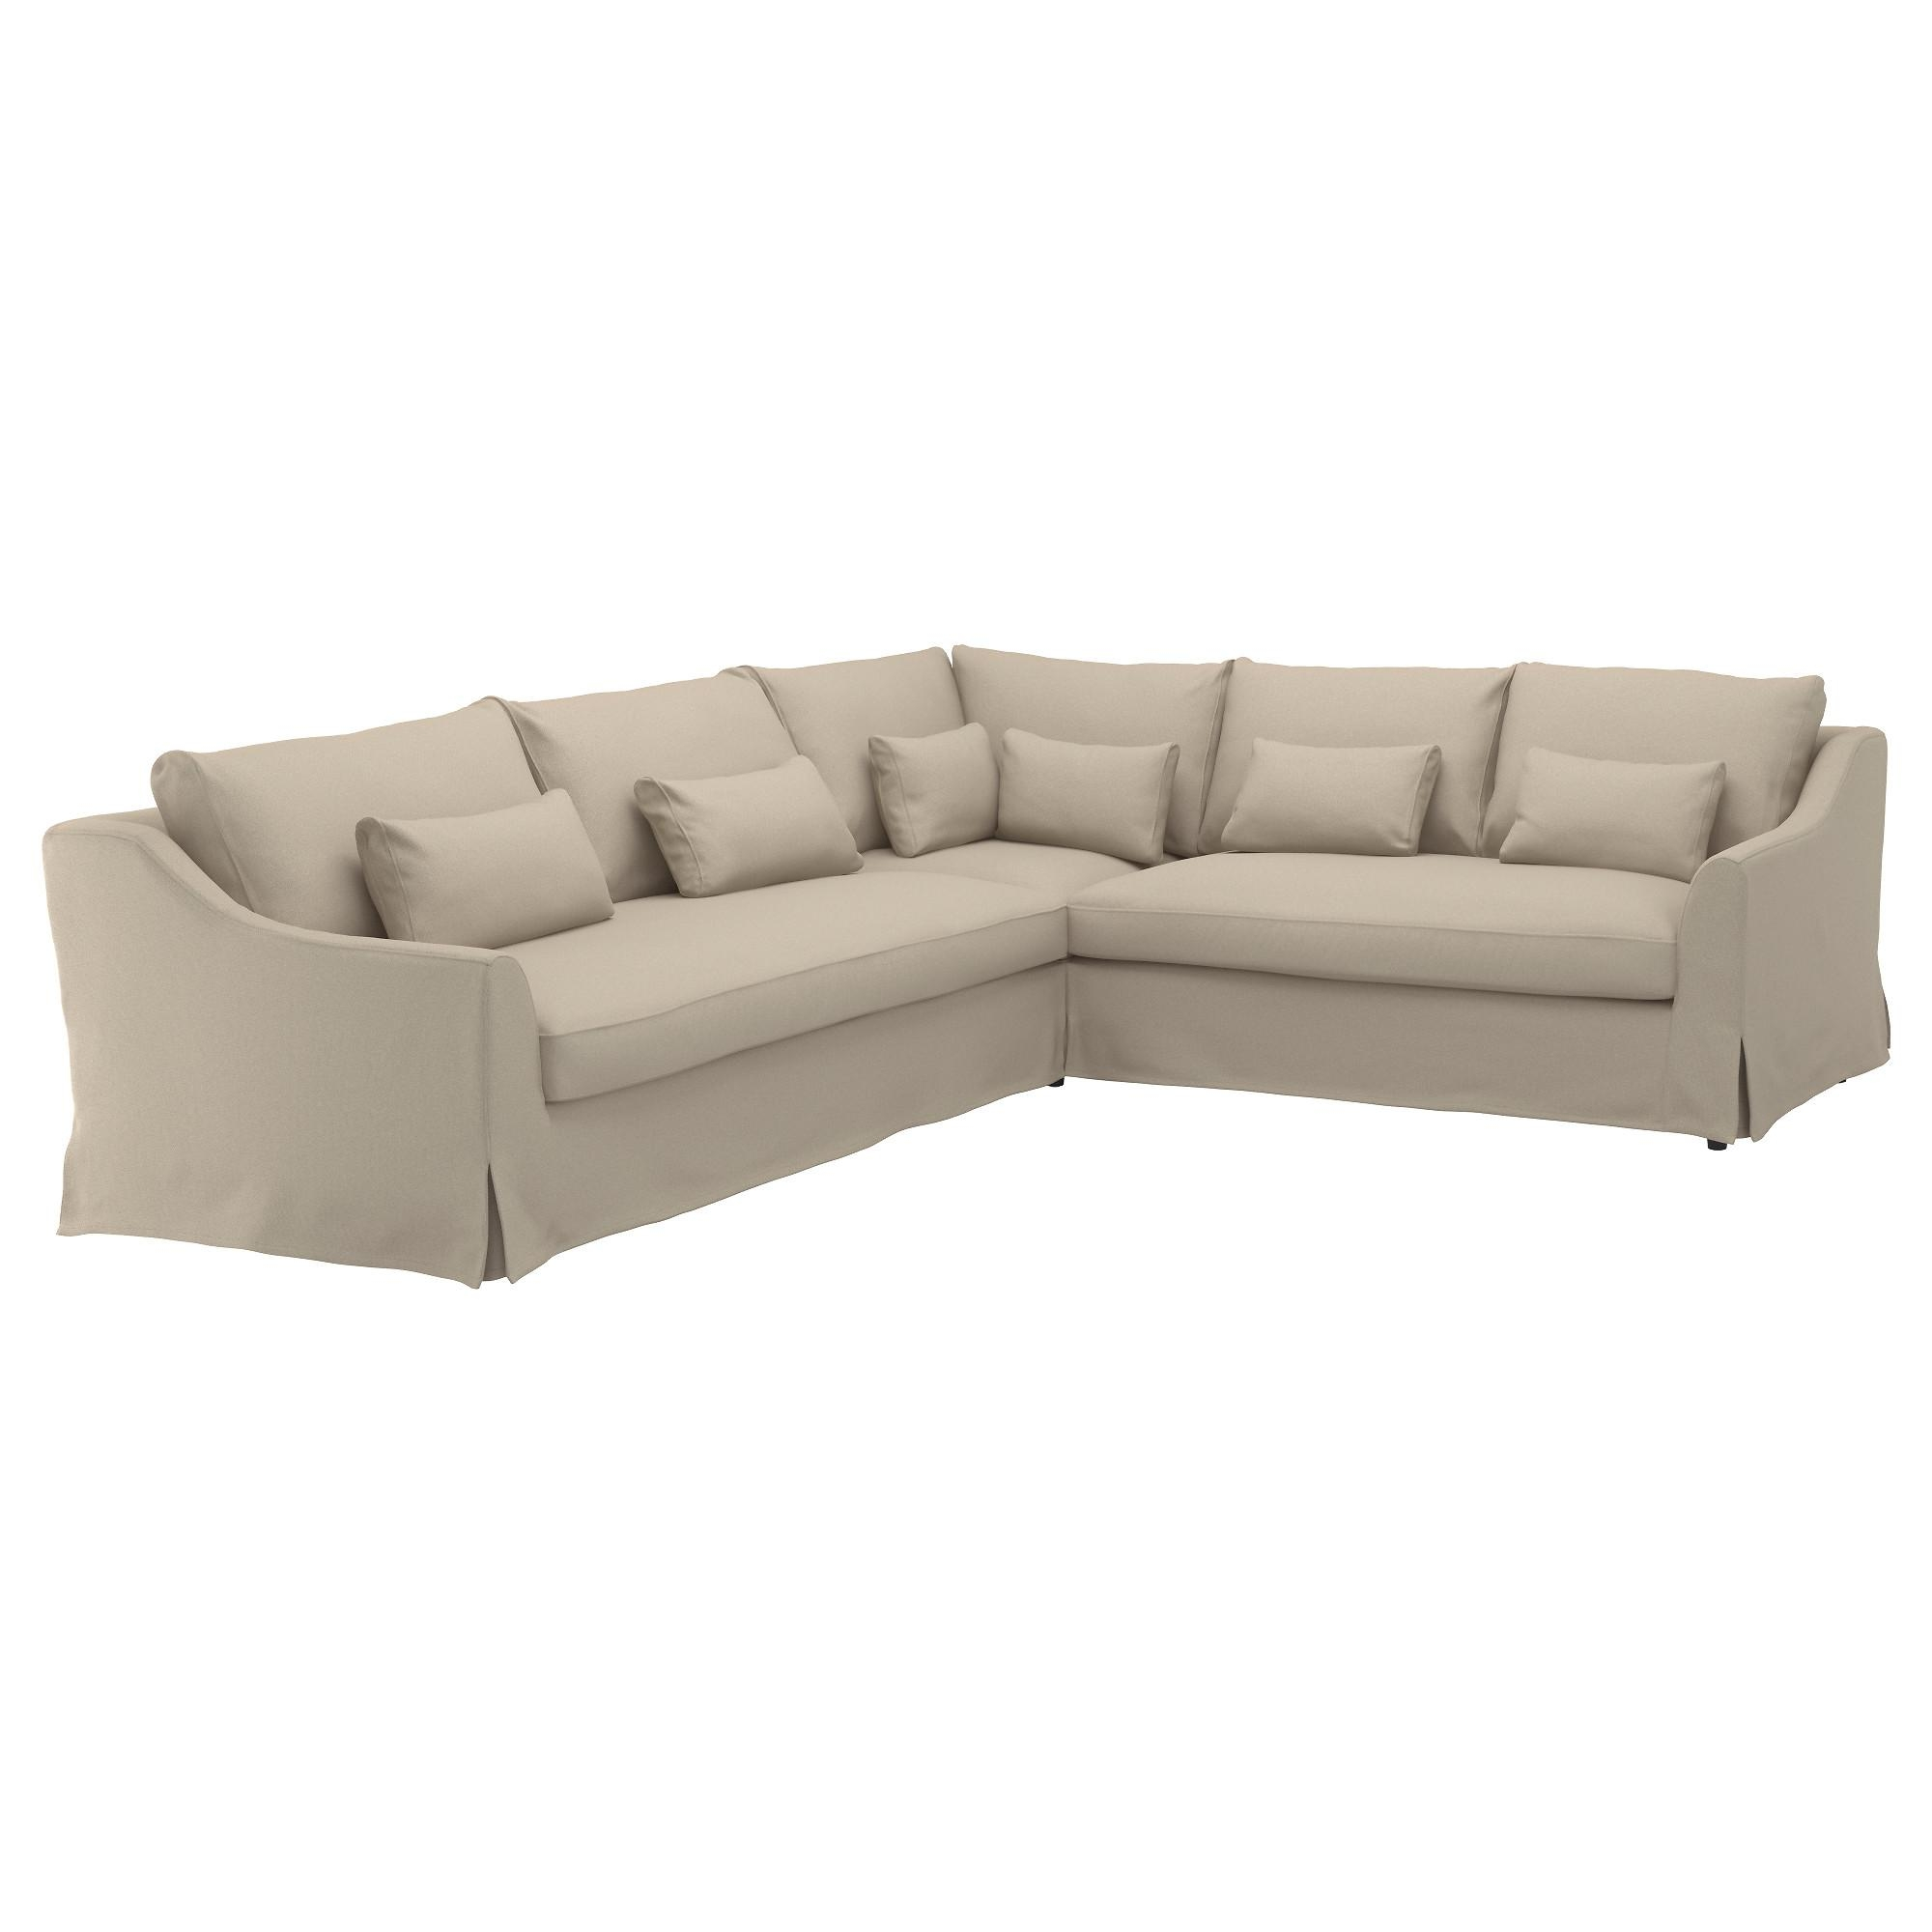 Fabric Sectional Sofas – Ikea Regarding Furniture Sectionals Ikea (Image 3 of 15)